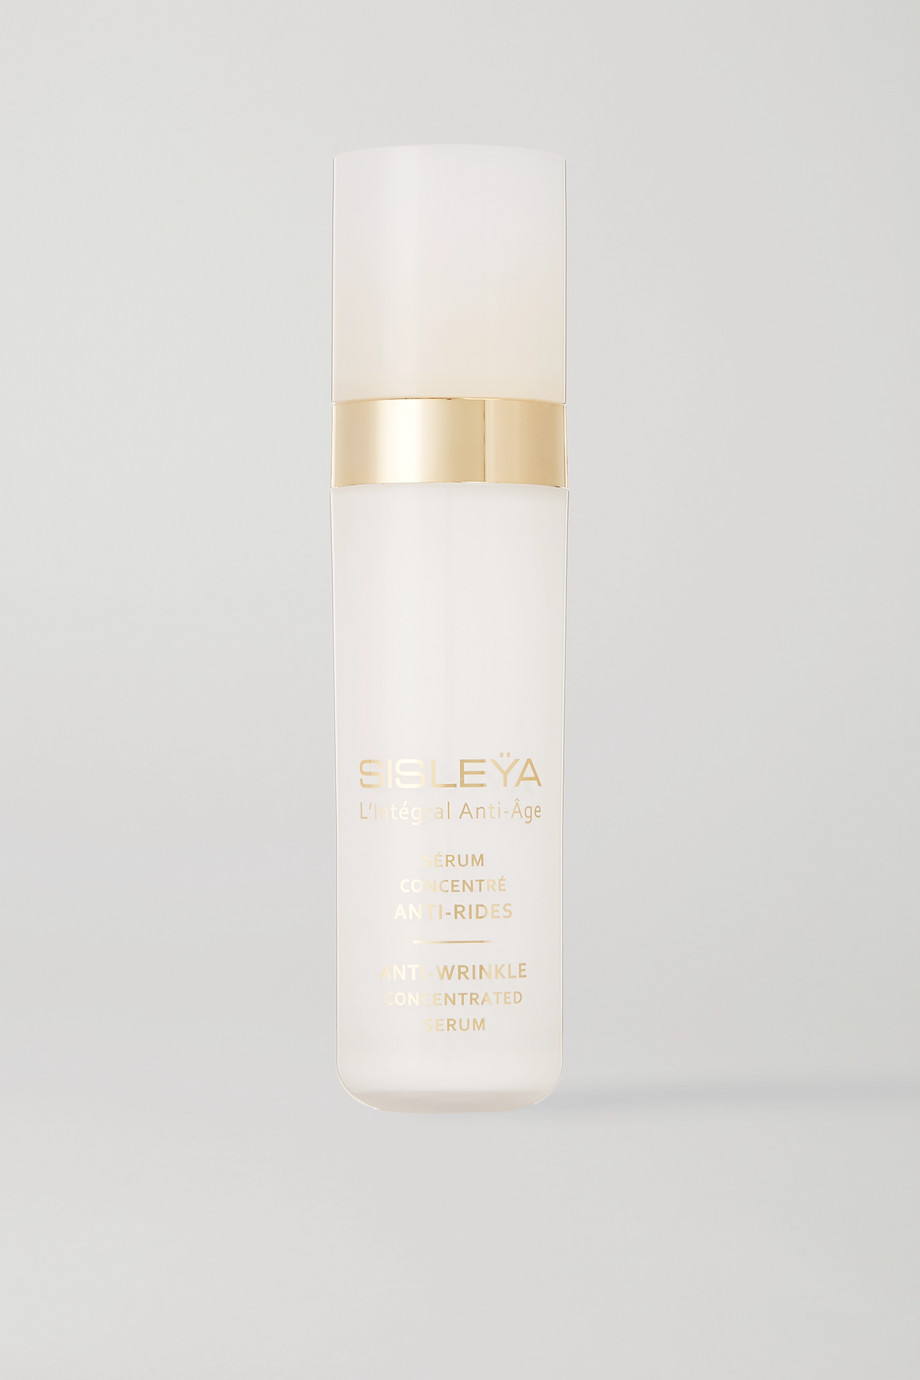 Sisley Sisleÿa L'Intégral Anti-Age Anti-Wrinkle Concentrated Serum, 30 ml – Serum